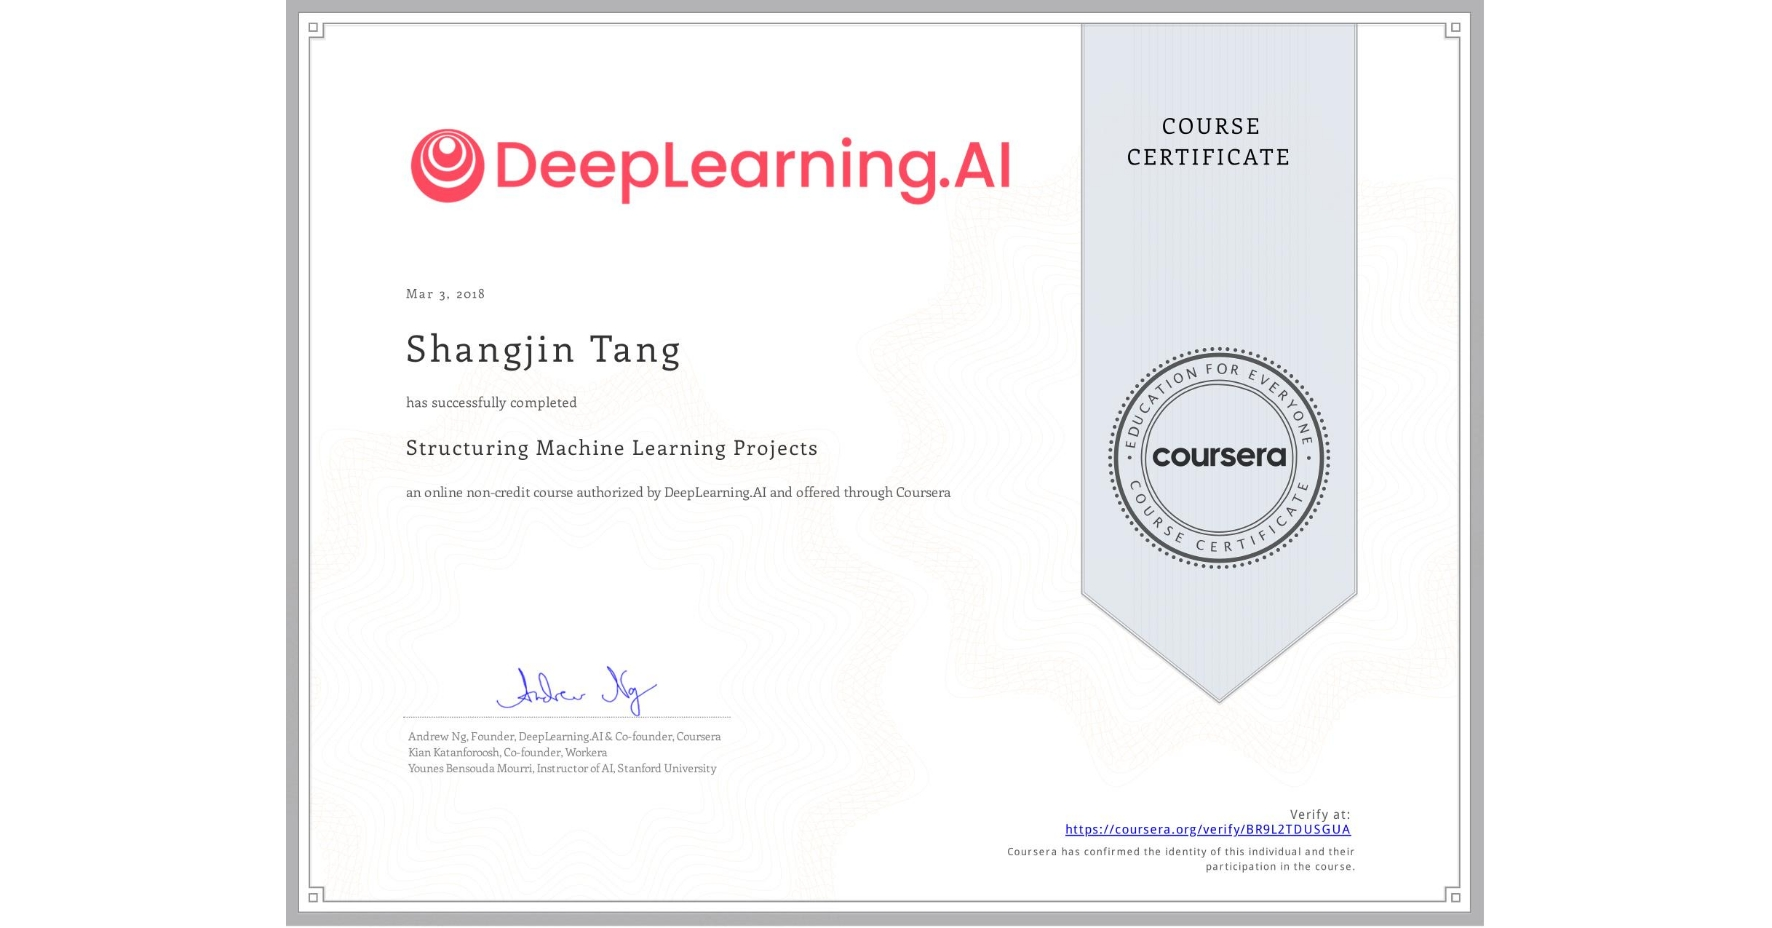 View certificate for Shangjin Tang, Structuring Machine Learning Projects, an online non-credit course authorized by DeepLearning.AI and offered through Coursera